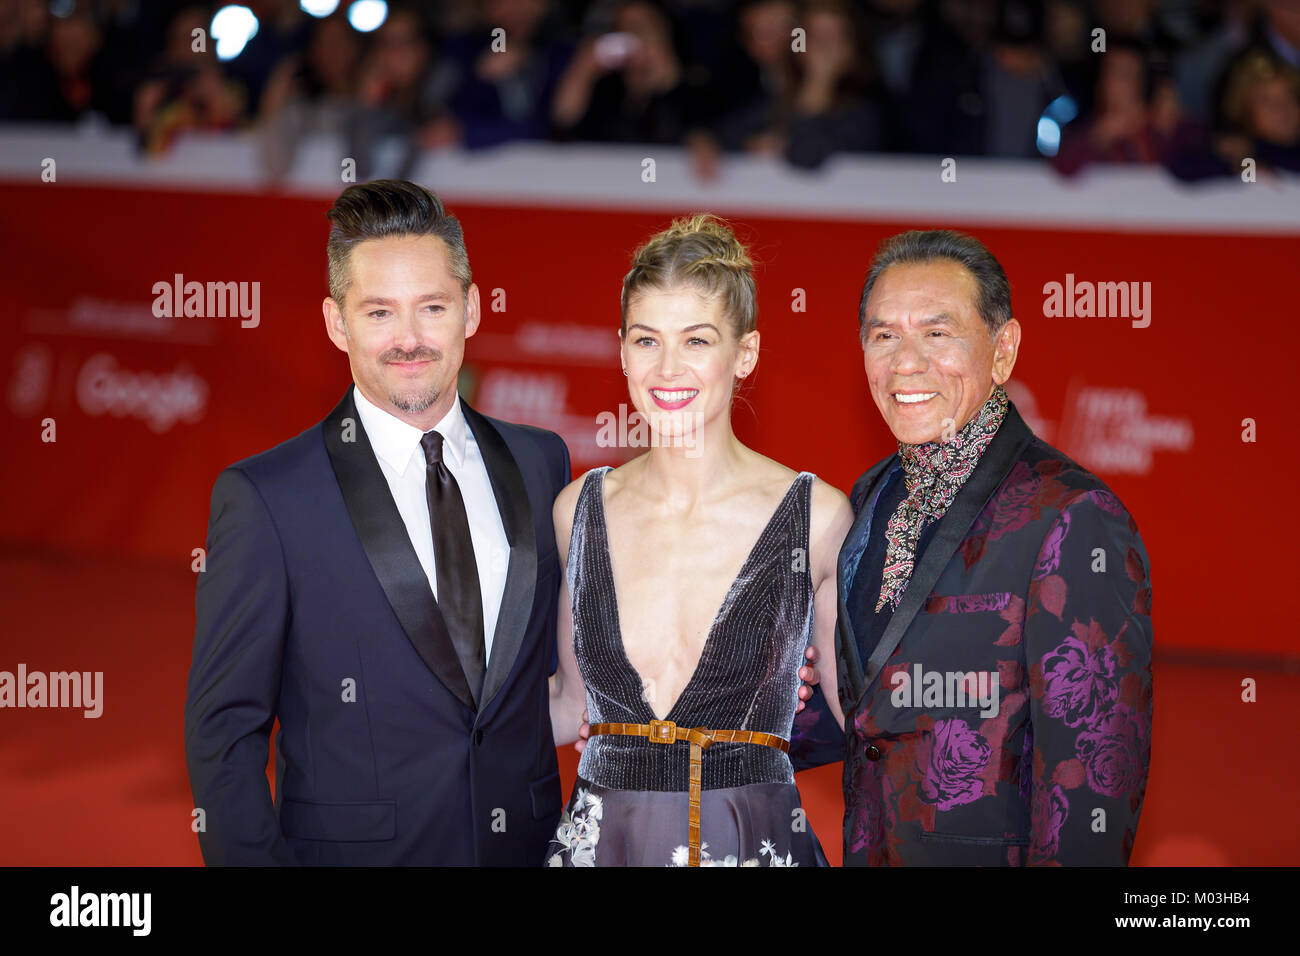 Rome, Italy - October 26, 2017: Rosamund Pike (center), Scott Cooper (left), and Wes Studios on the red carpet of - Stock Image